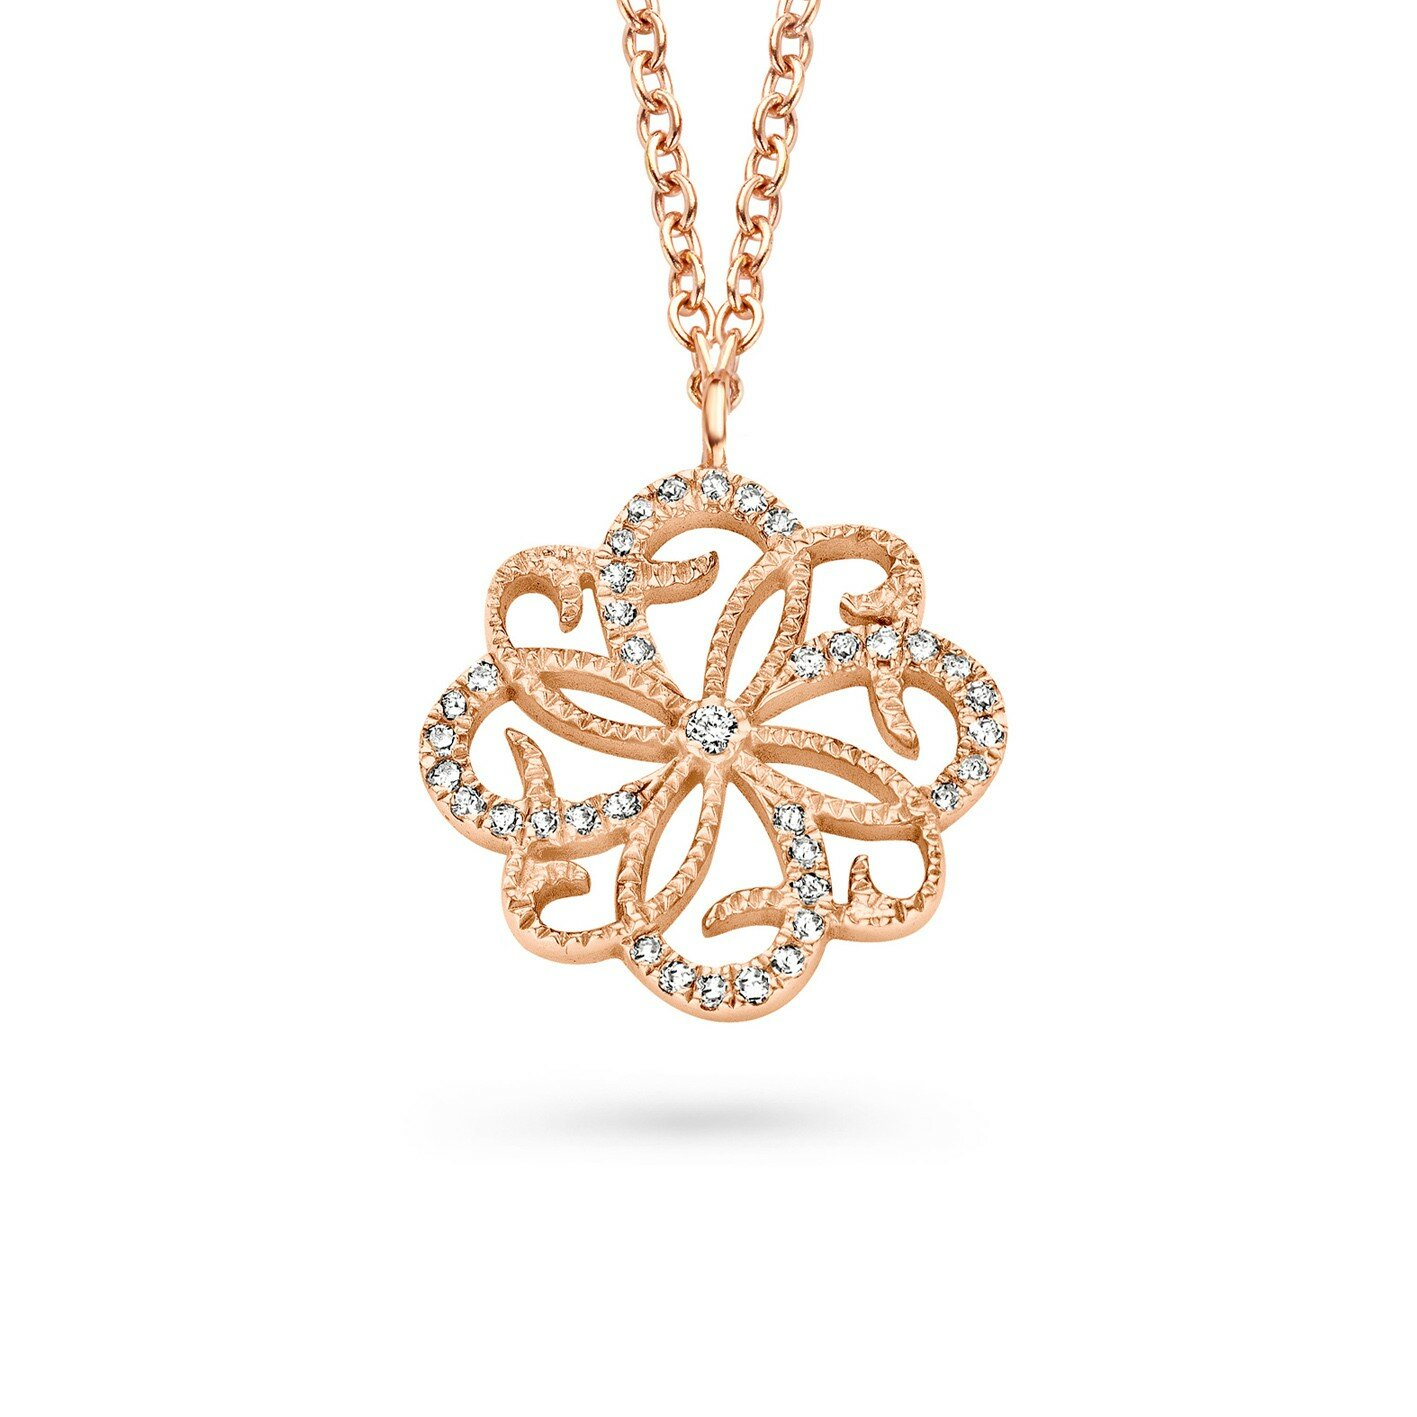 Free shipping on necklaces for women at travabjmsh.ga Shop for initial, pendant, layered necklaces and more. Totally free shipping and returns.